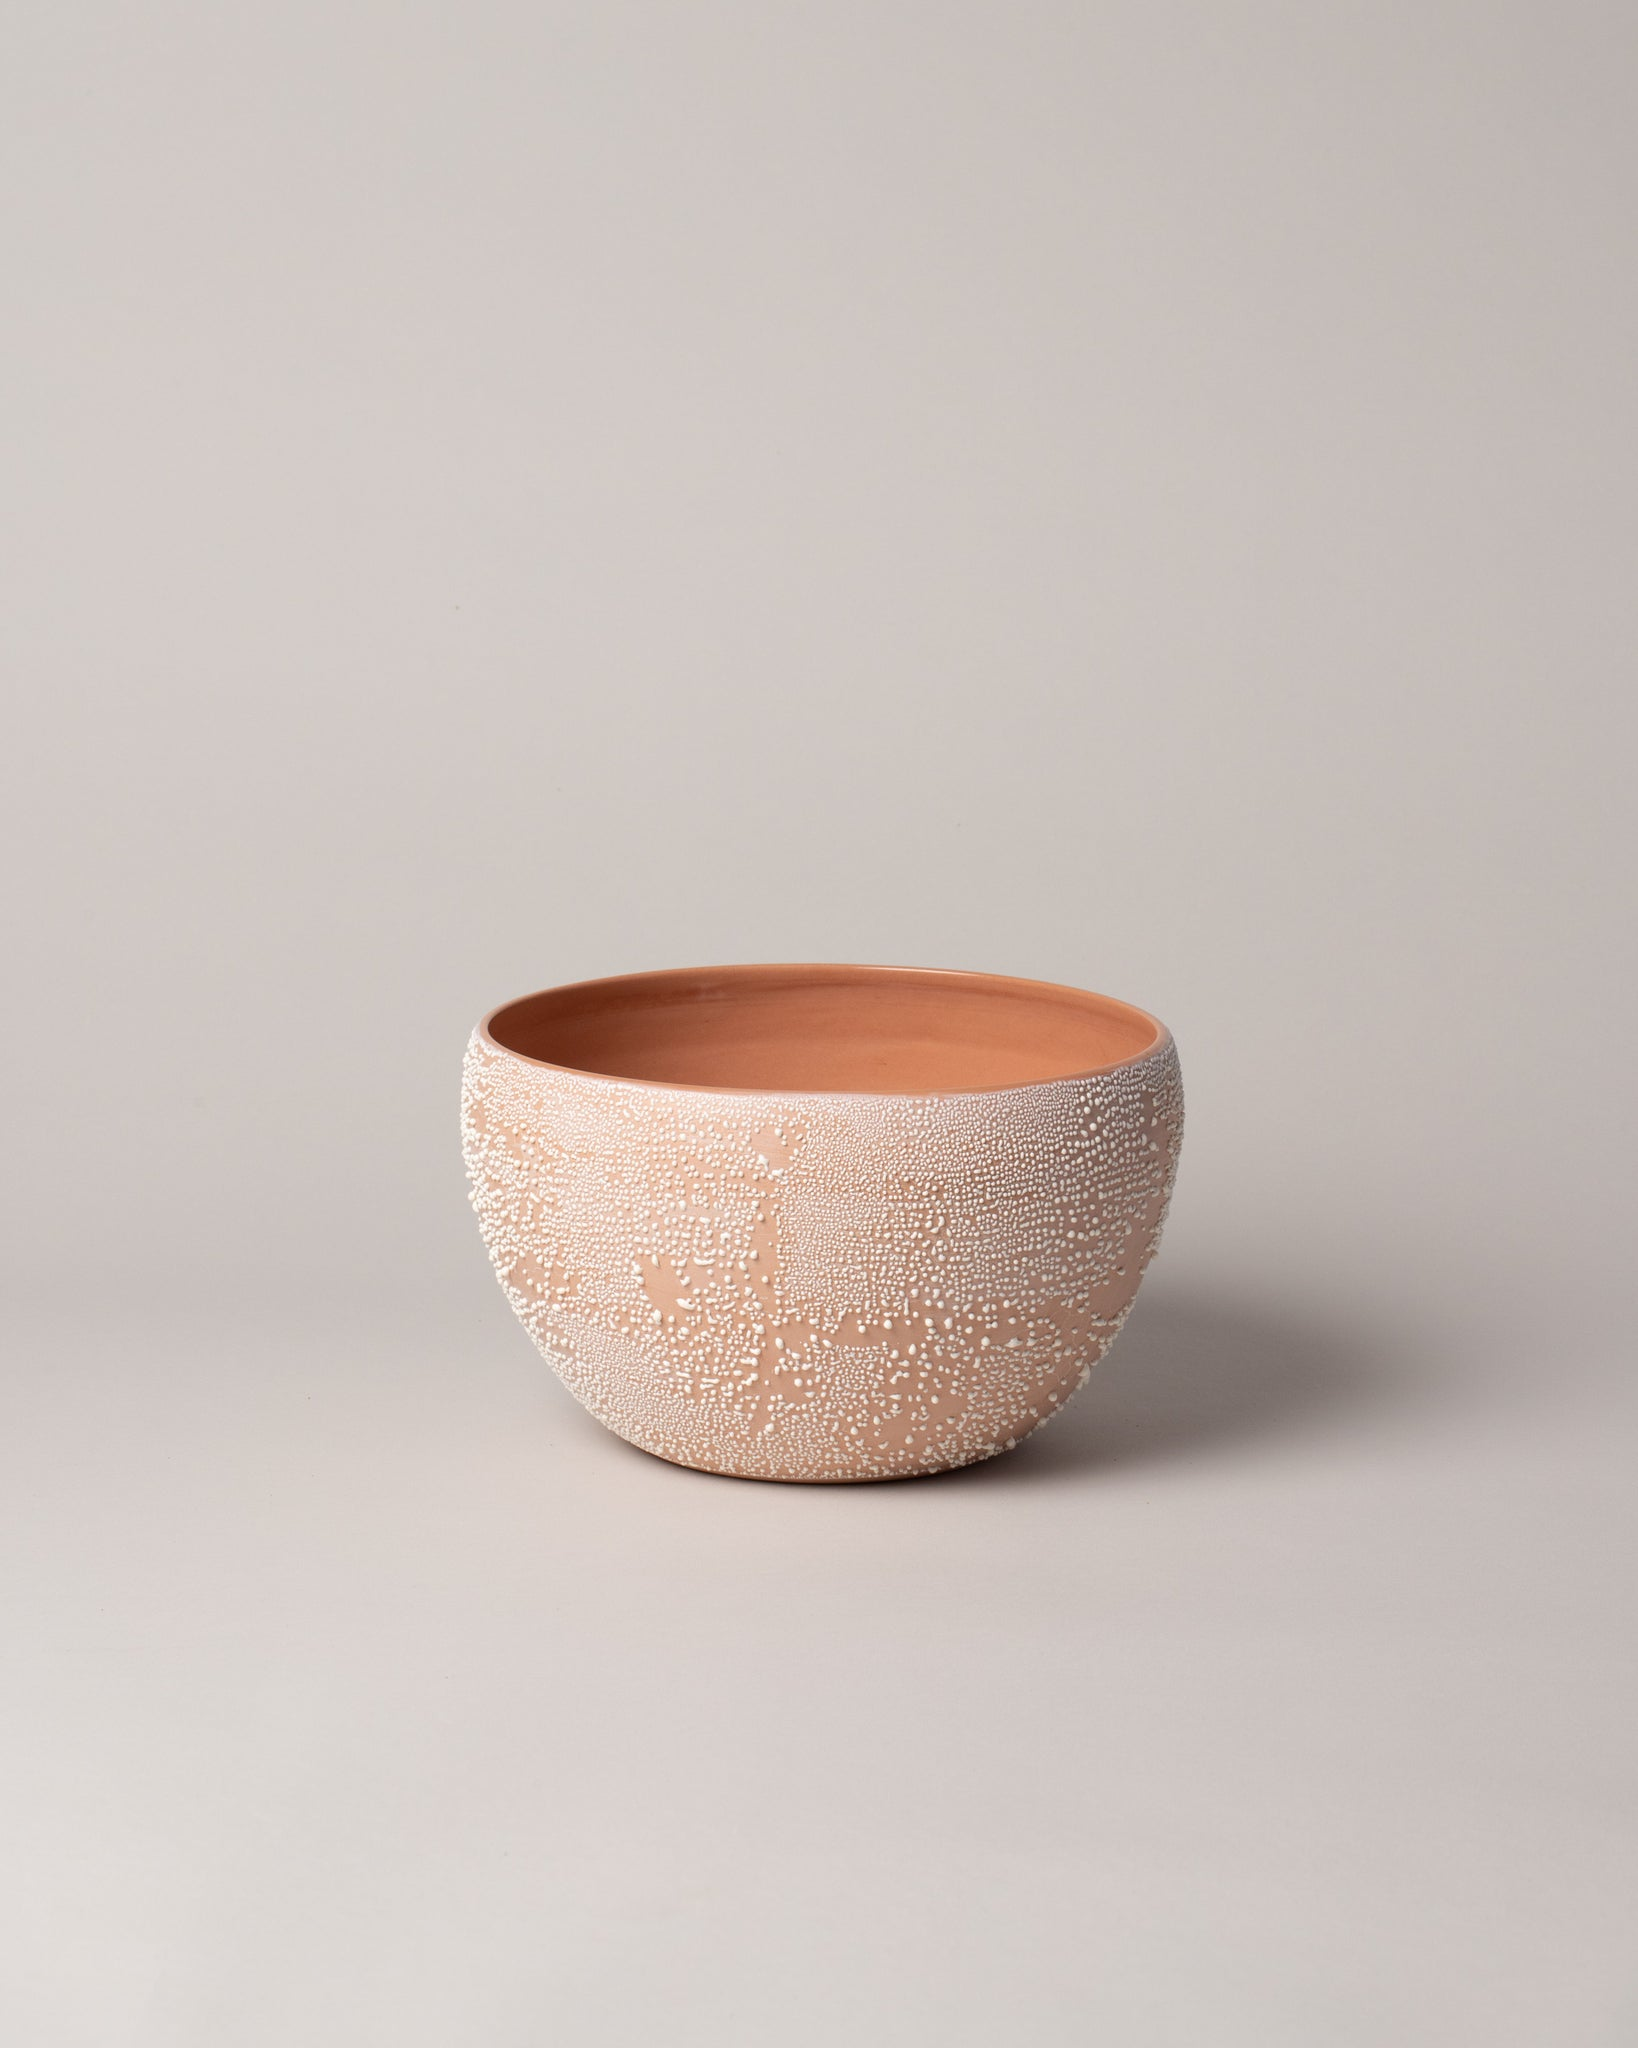 Dew Serving Bowl in Terracotta